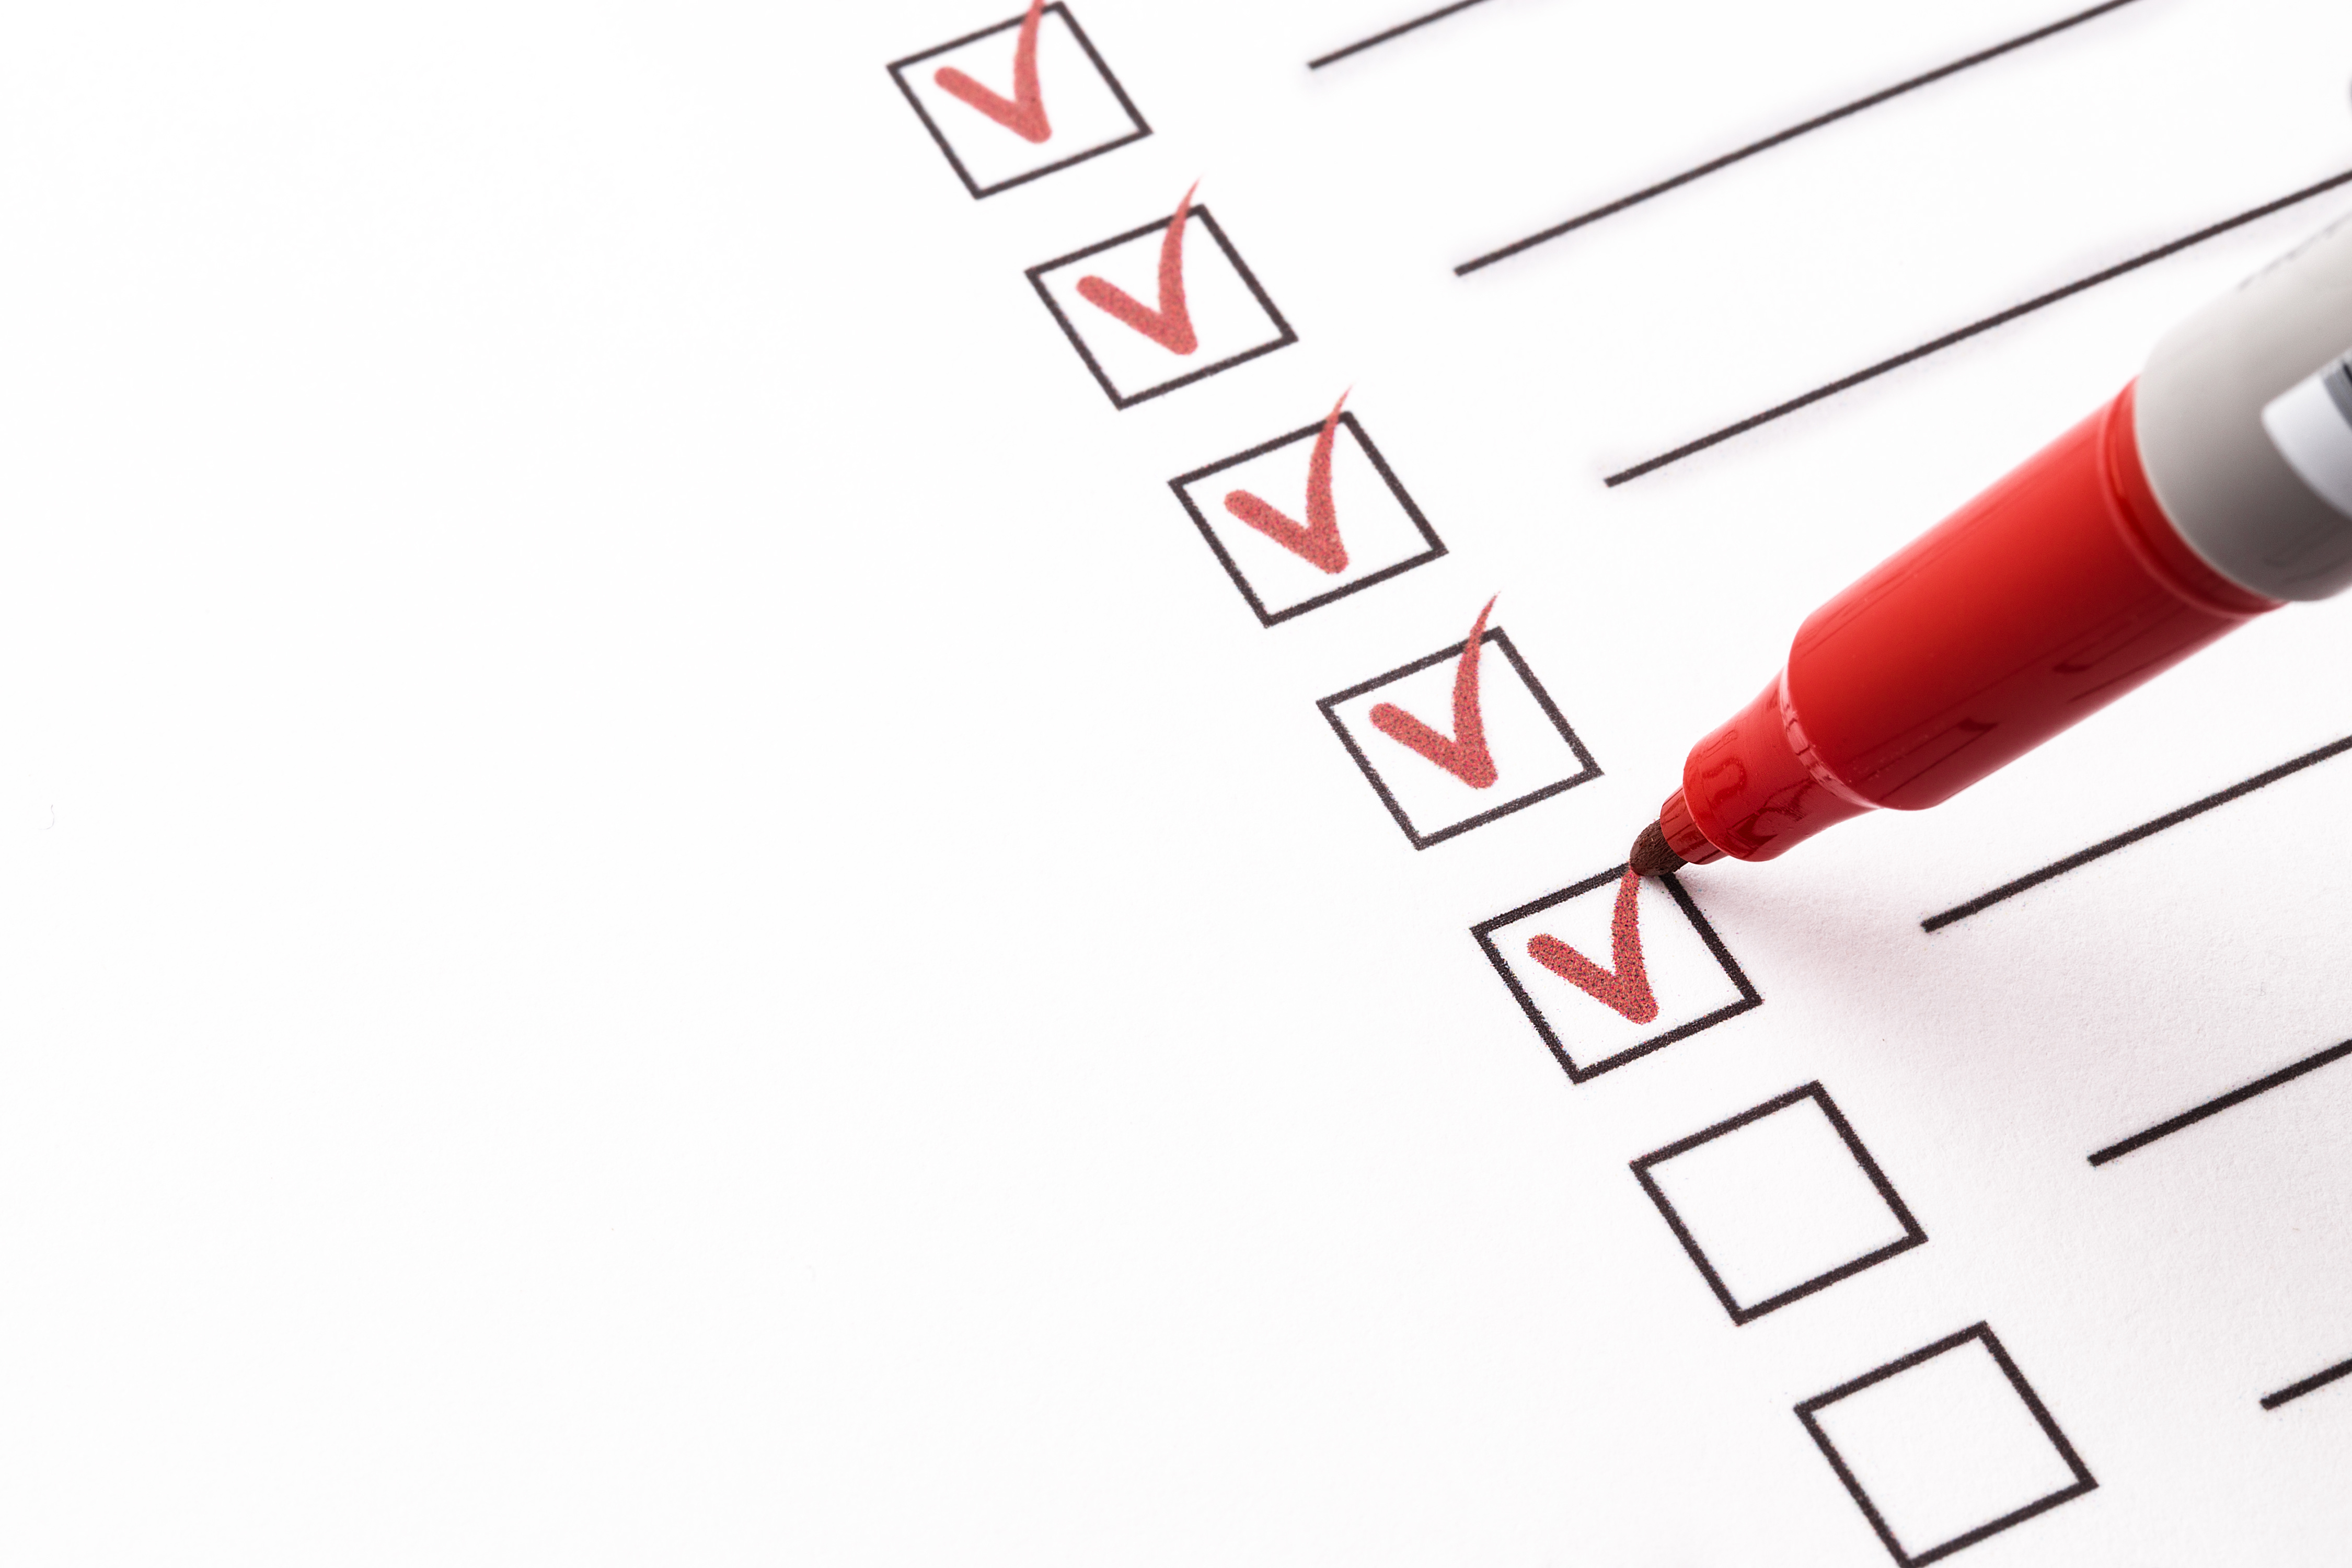 Credit union exam checklist from redboard